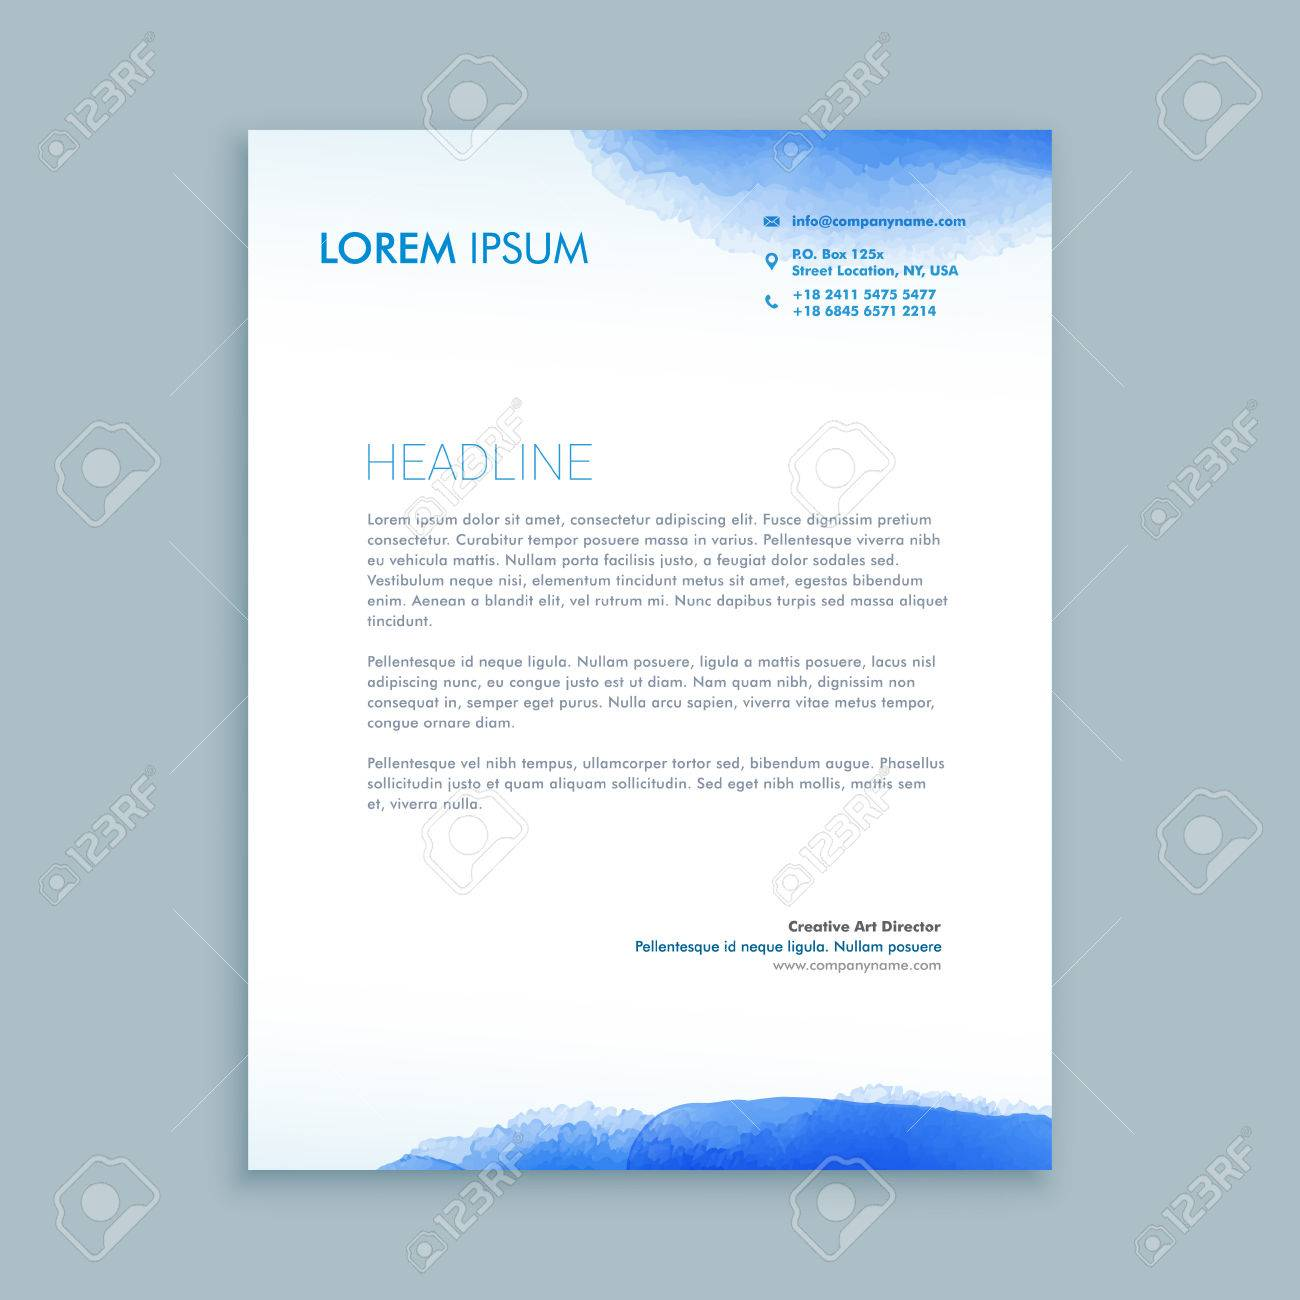 Corporate business letterhead template royalty free cliparts corporate business letterhead template stock vector 55398040 wajeb Gallery